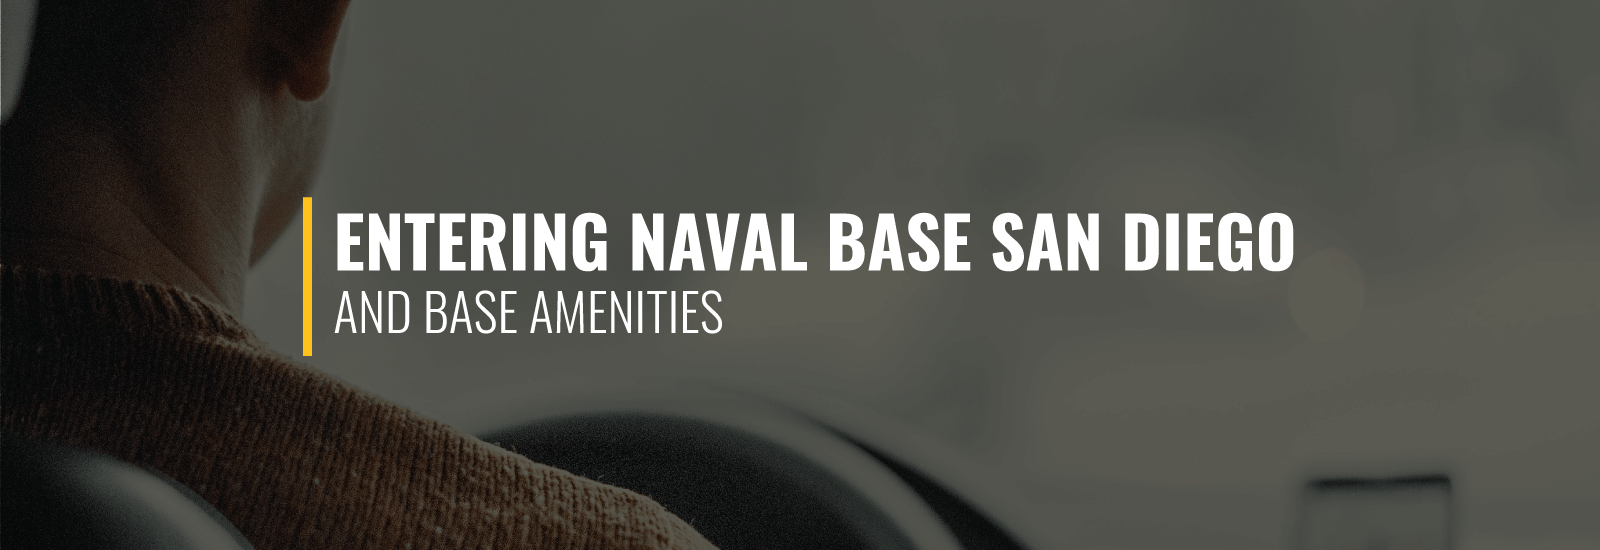 Entering Naval Base San Diego and Base Amenities